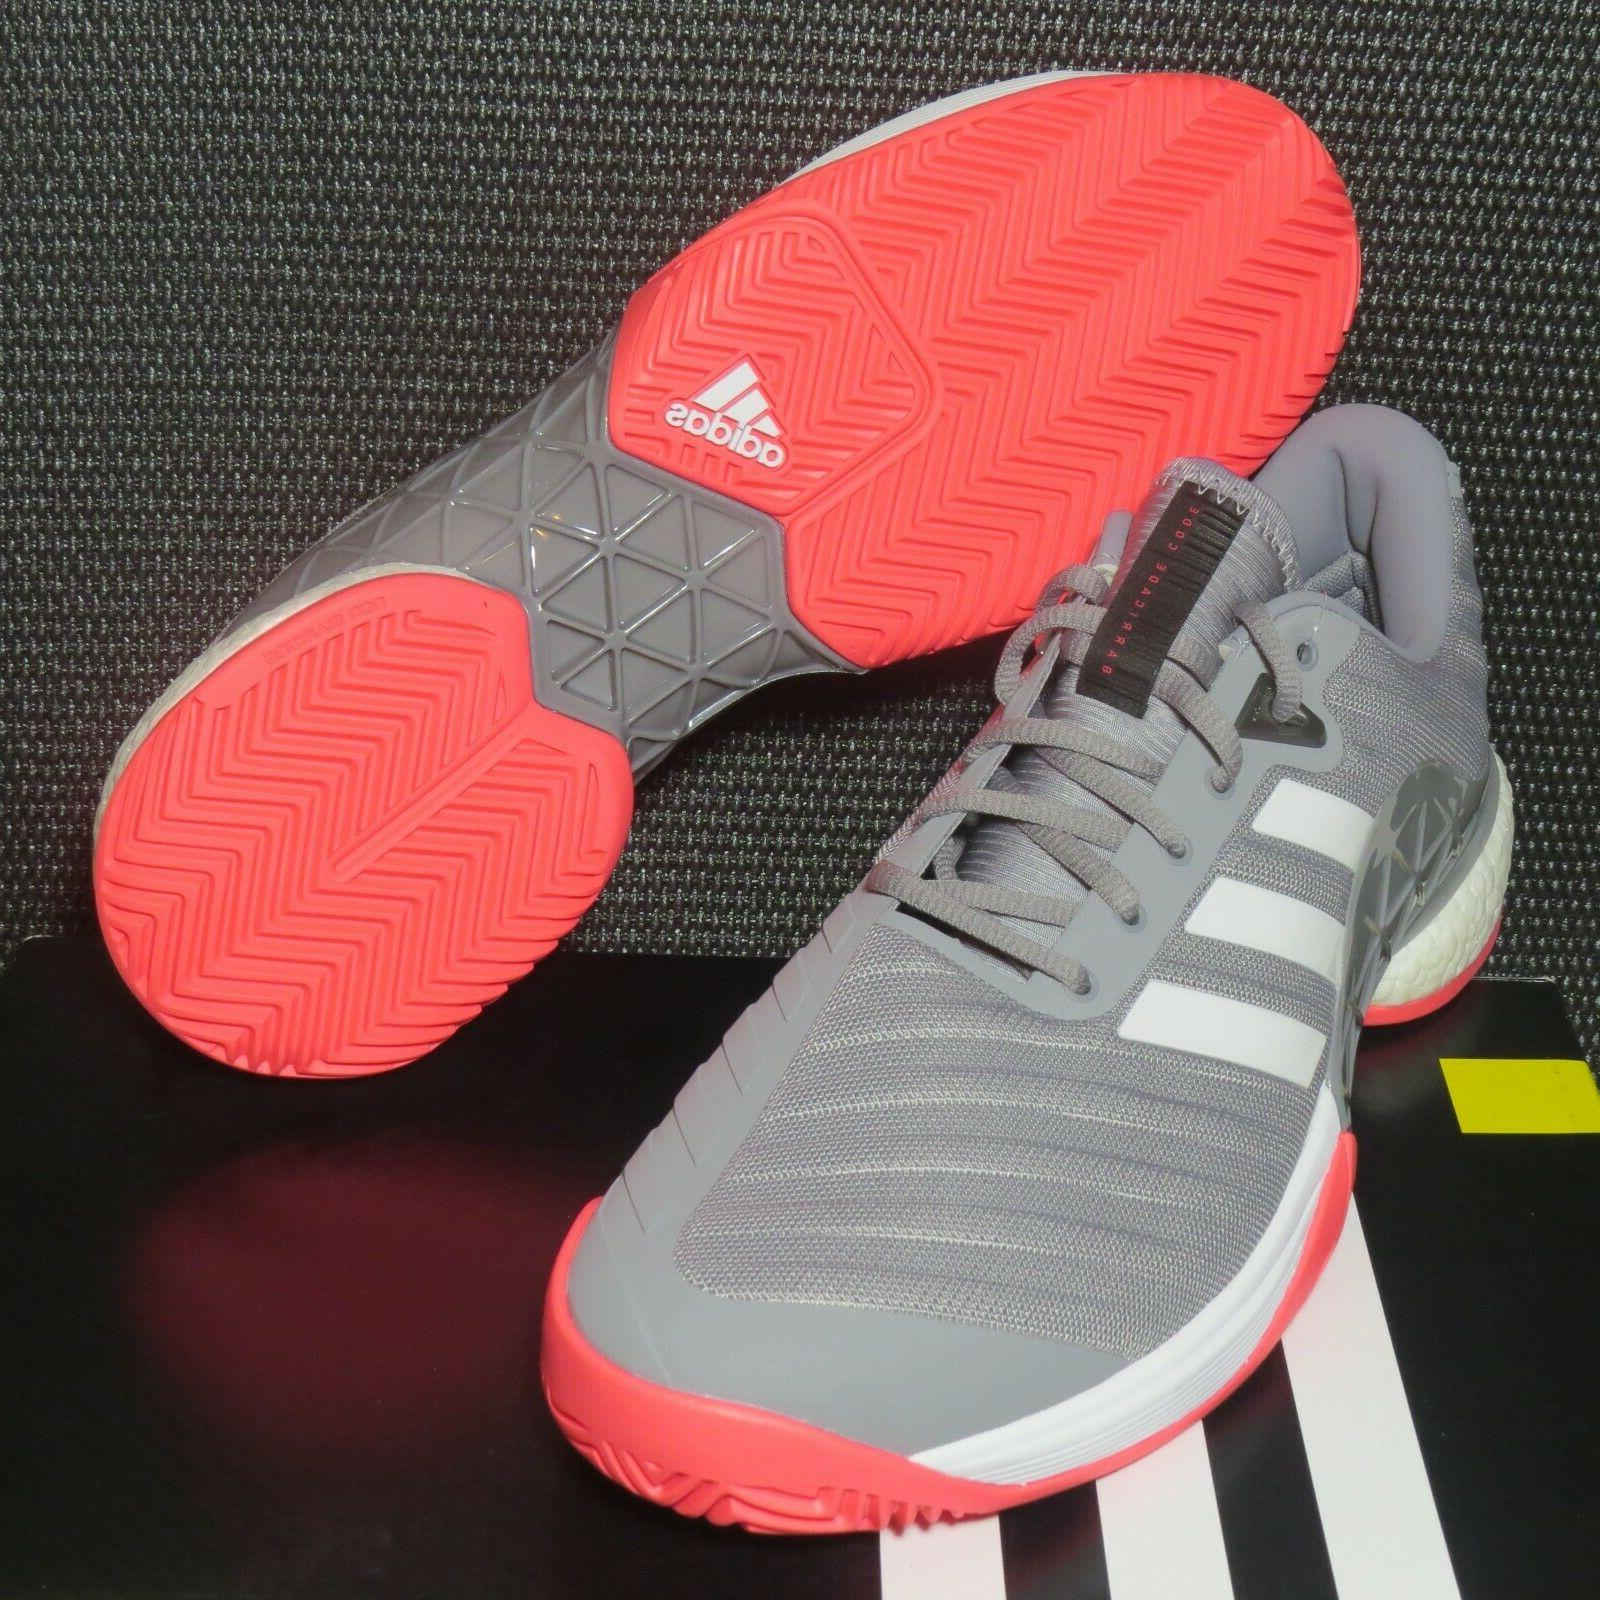 adidas Barricade Boost AH2094 Size Mens Tennis Shoes Grey/White/Pink